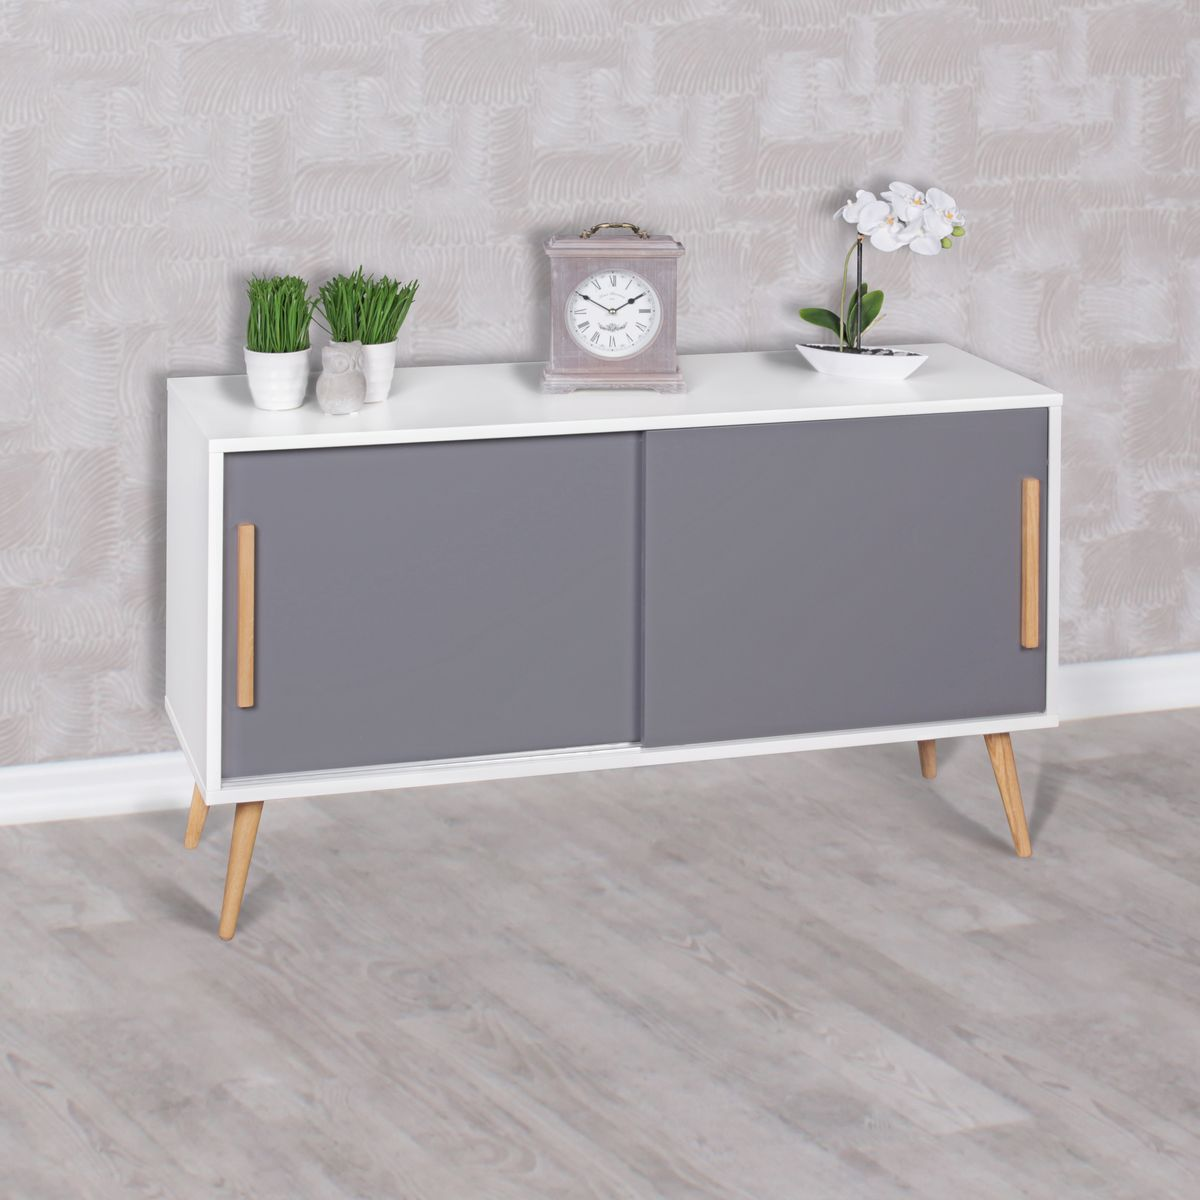 sideboard mit schiebet ren 120 cm skandinavisch design kommode aktenschrank wei ebay. Black Bedroom Furniture Sets. Home Design Ideas